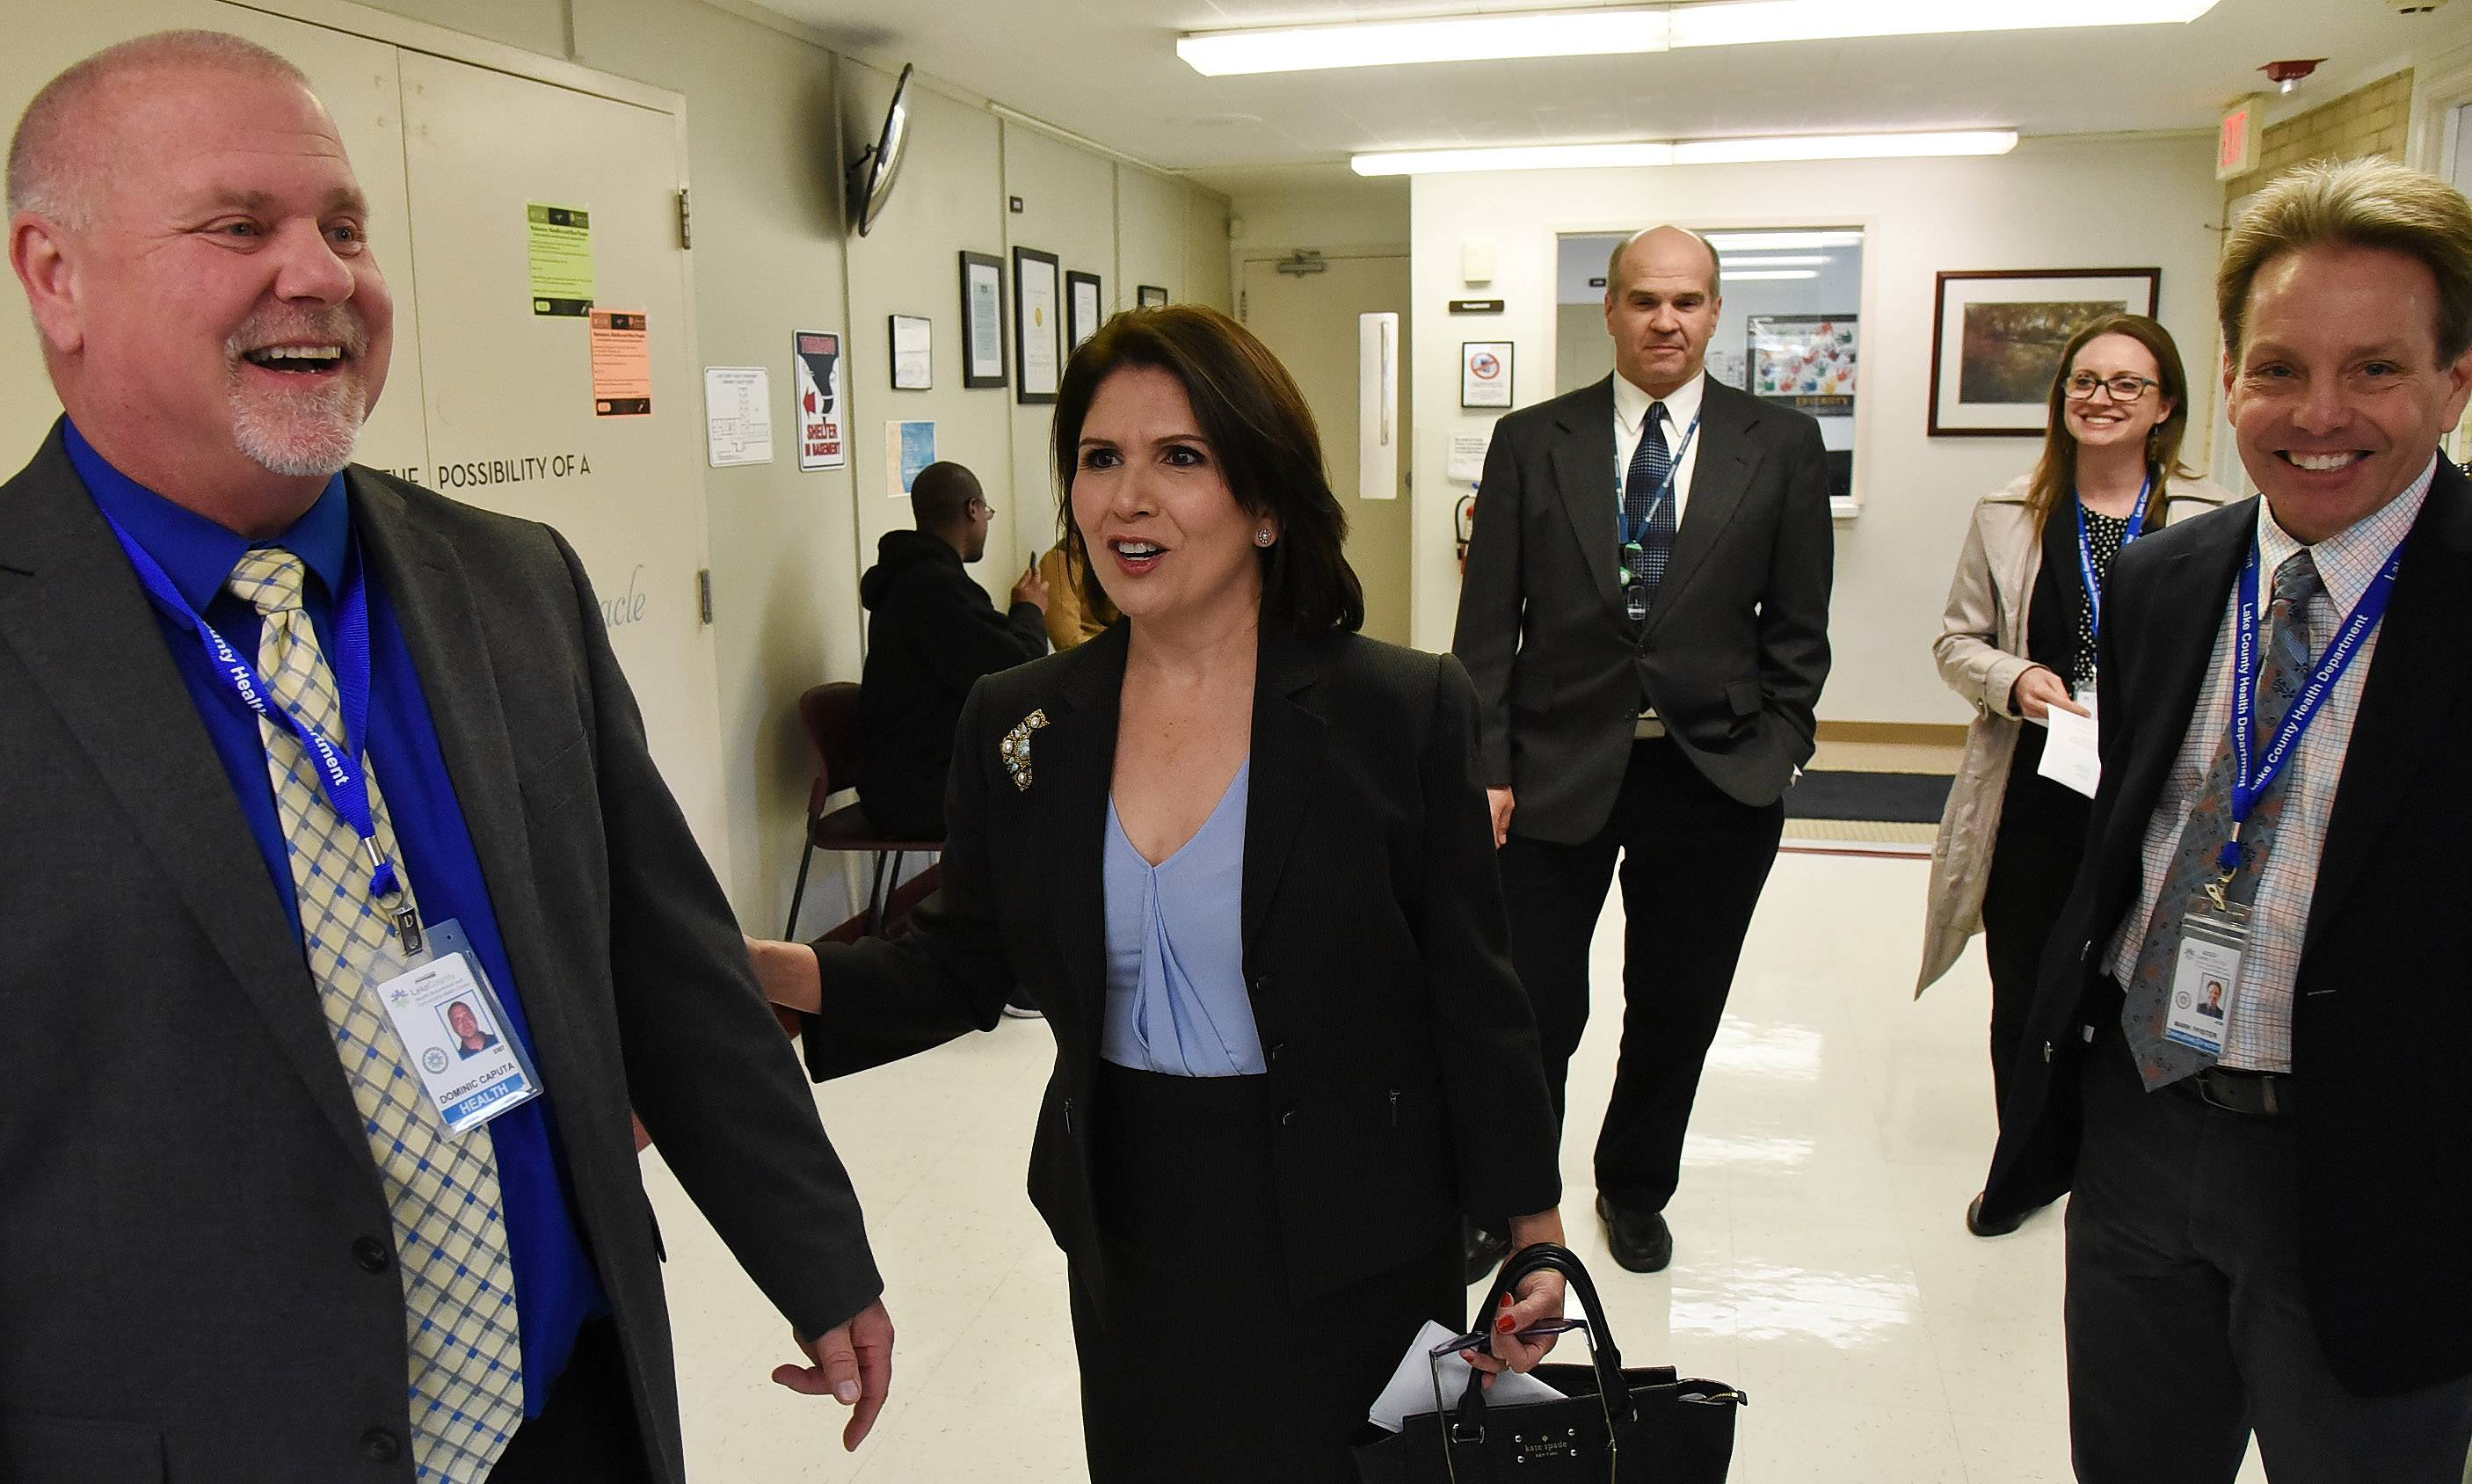 Lt. Gov. Evelyn Sanguinetti is given a tour of the Lake County Health Department and Community Health Center by Executive Director Mark Pfister, right, and Associate Director Nick Caputa Friday in Waukegan.